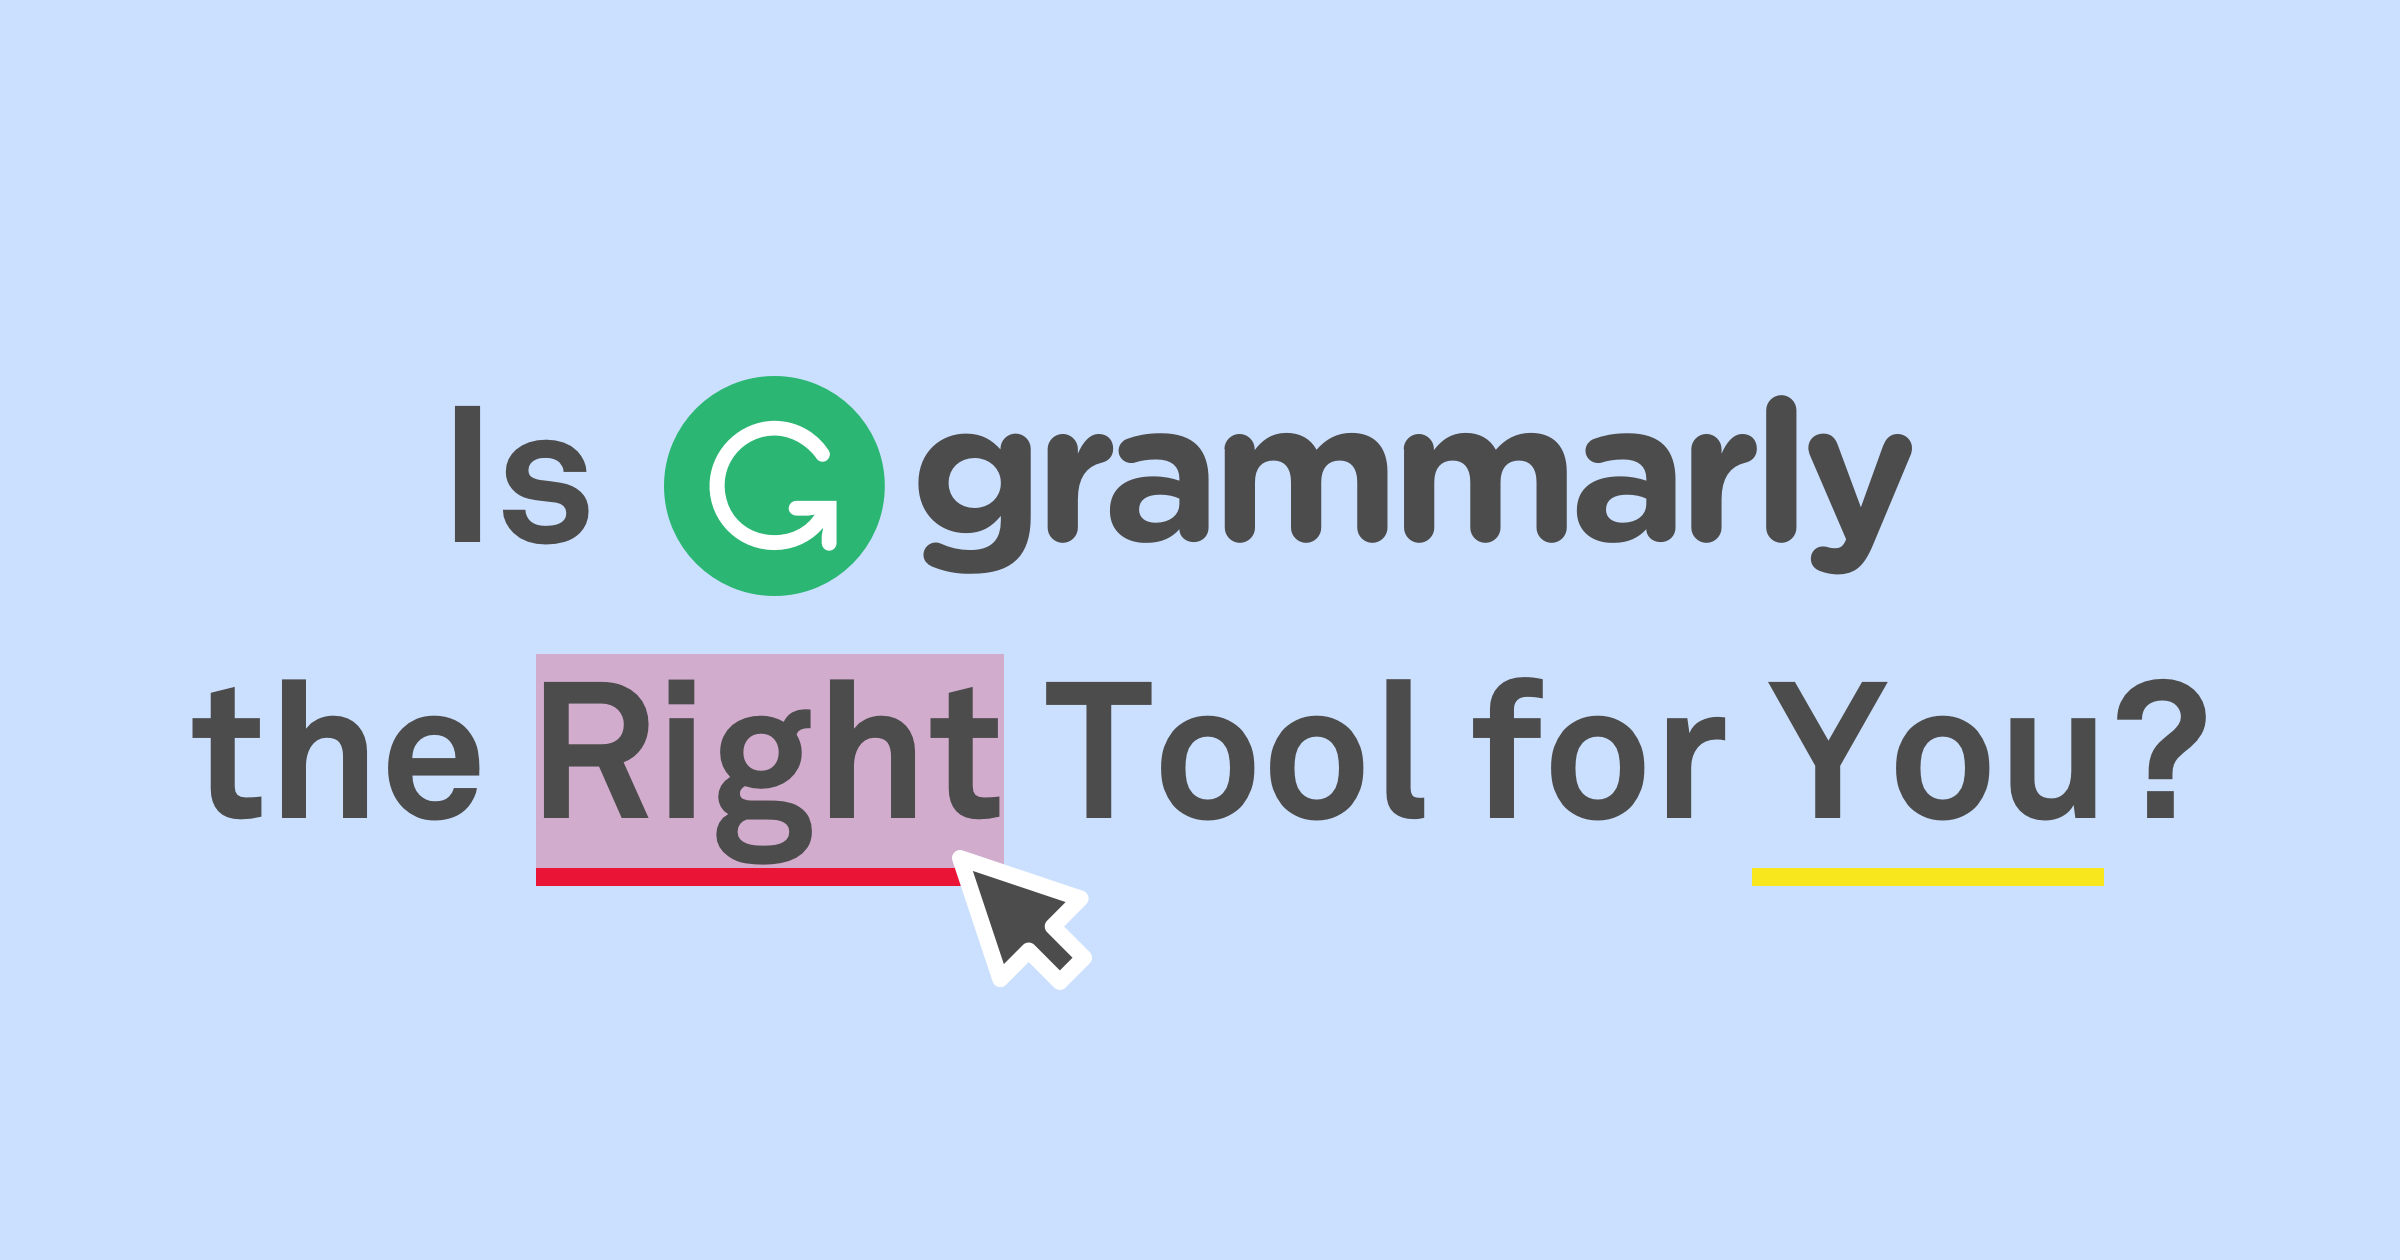 Buy Now Or Wait Grammarly